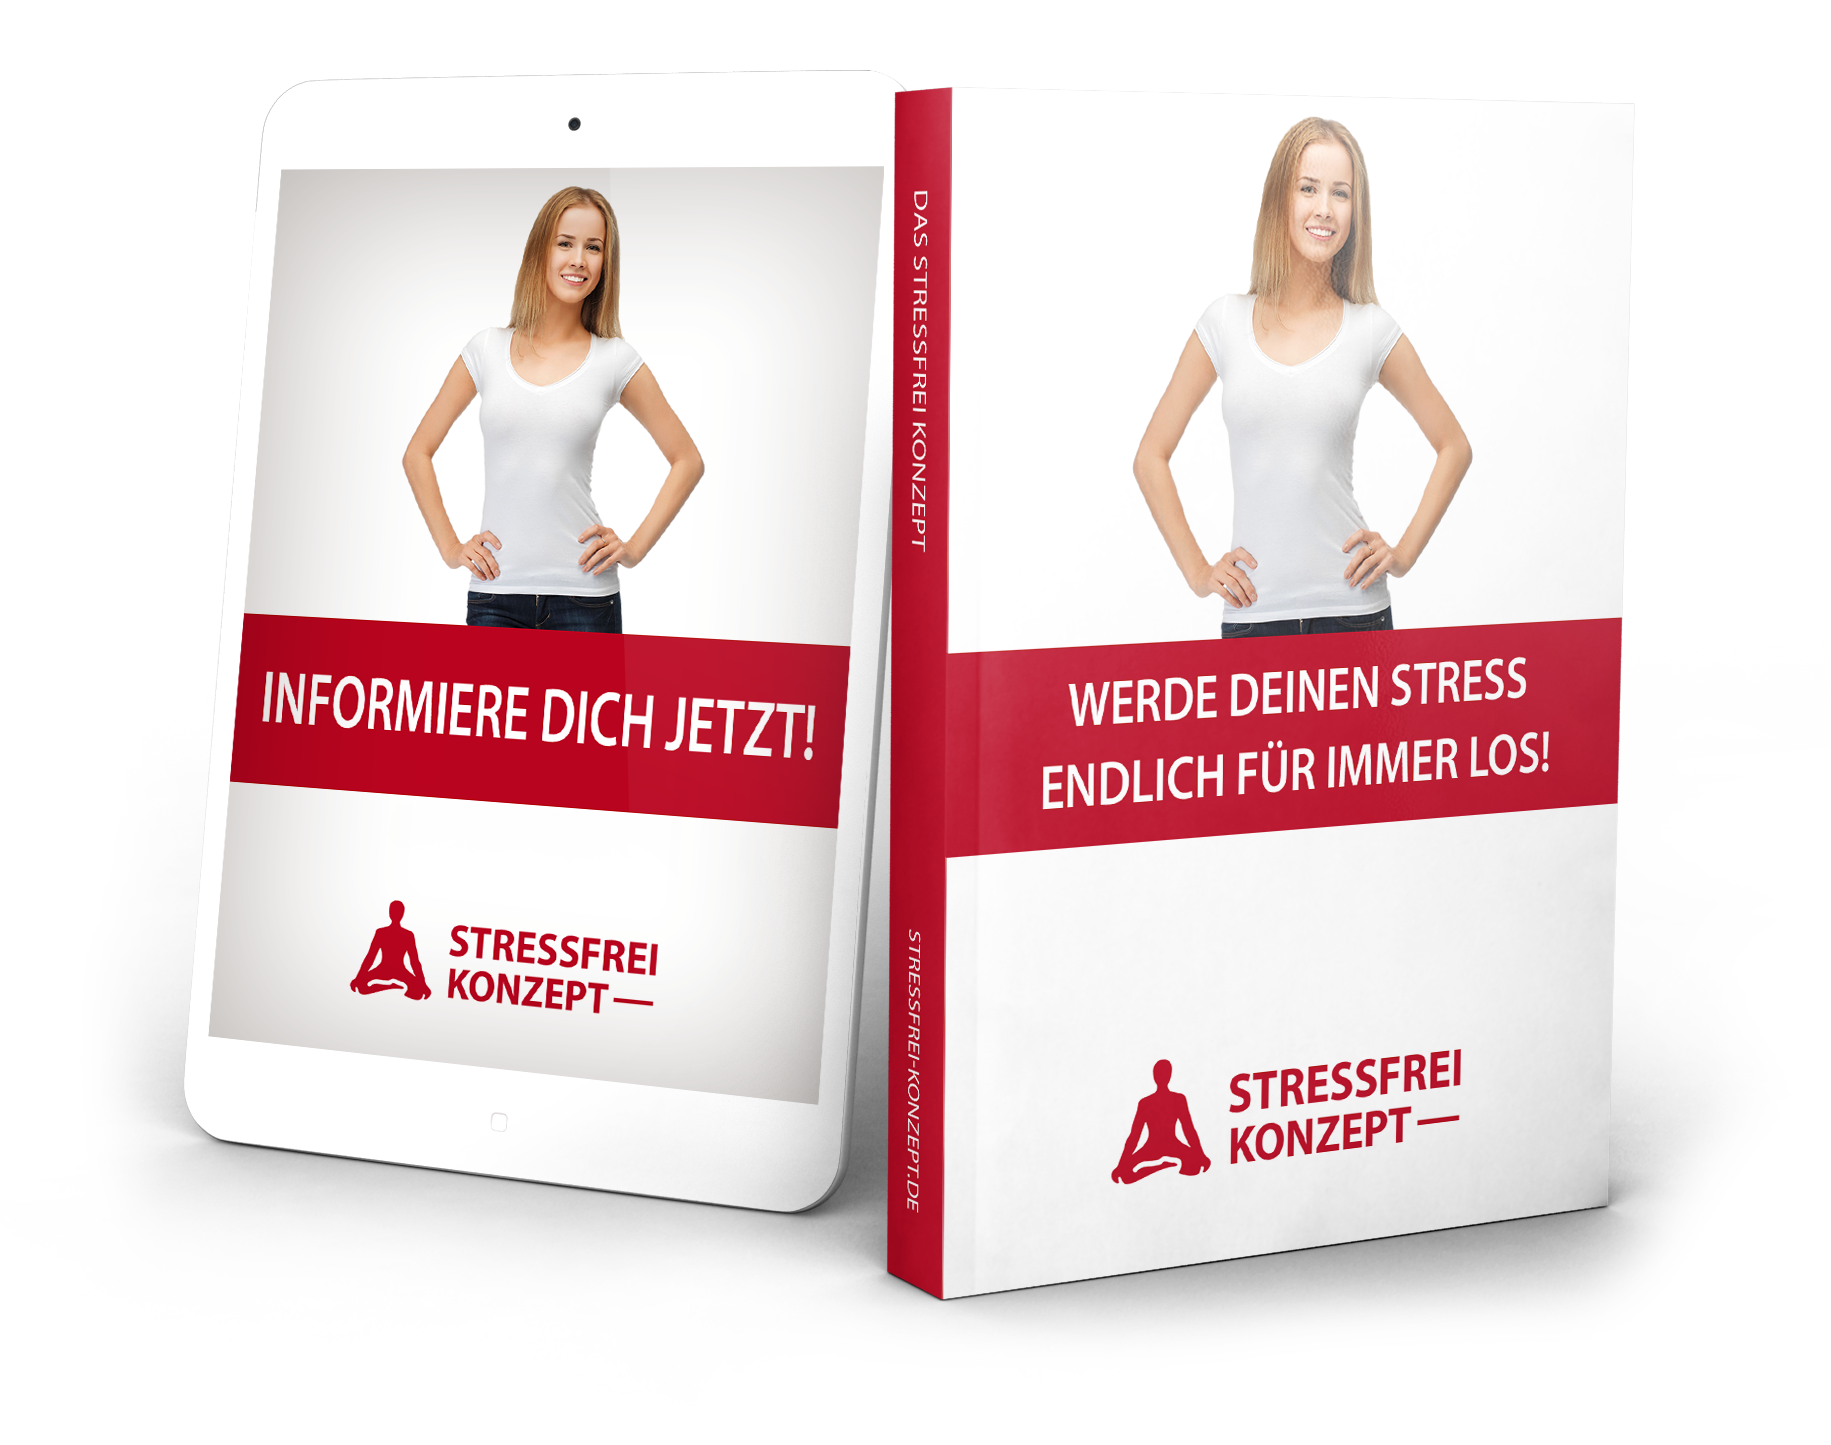 Stress in nur 5 Minuten loswerden